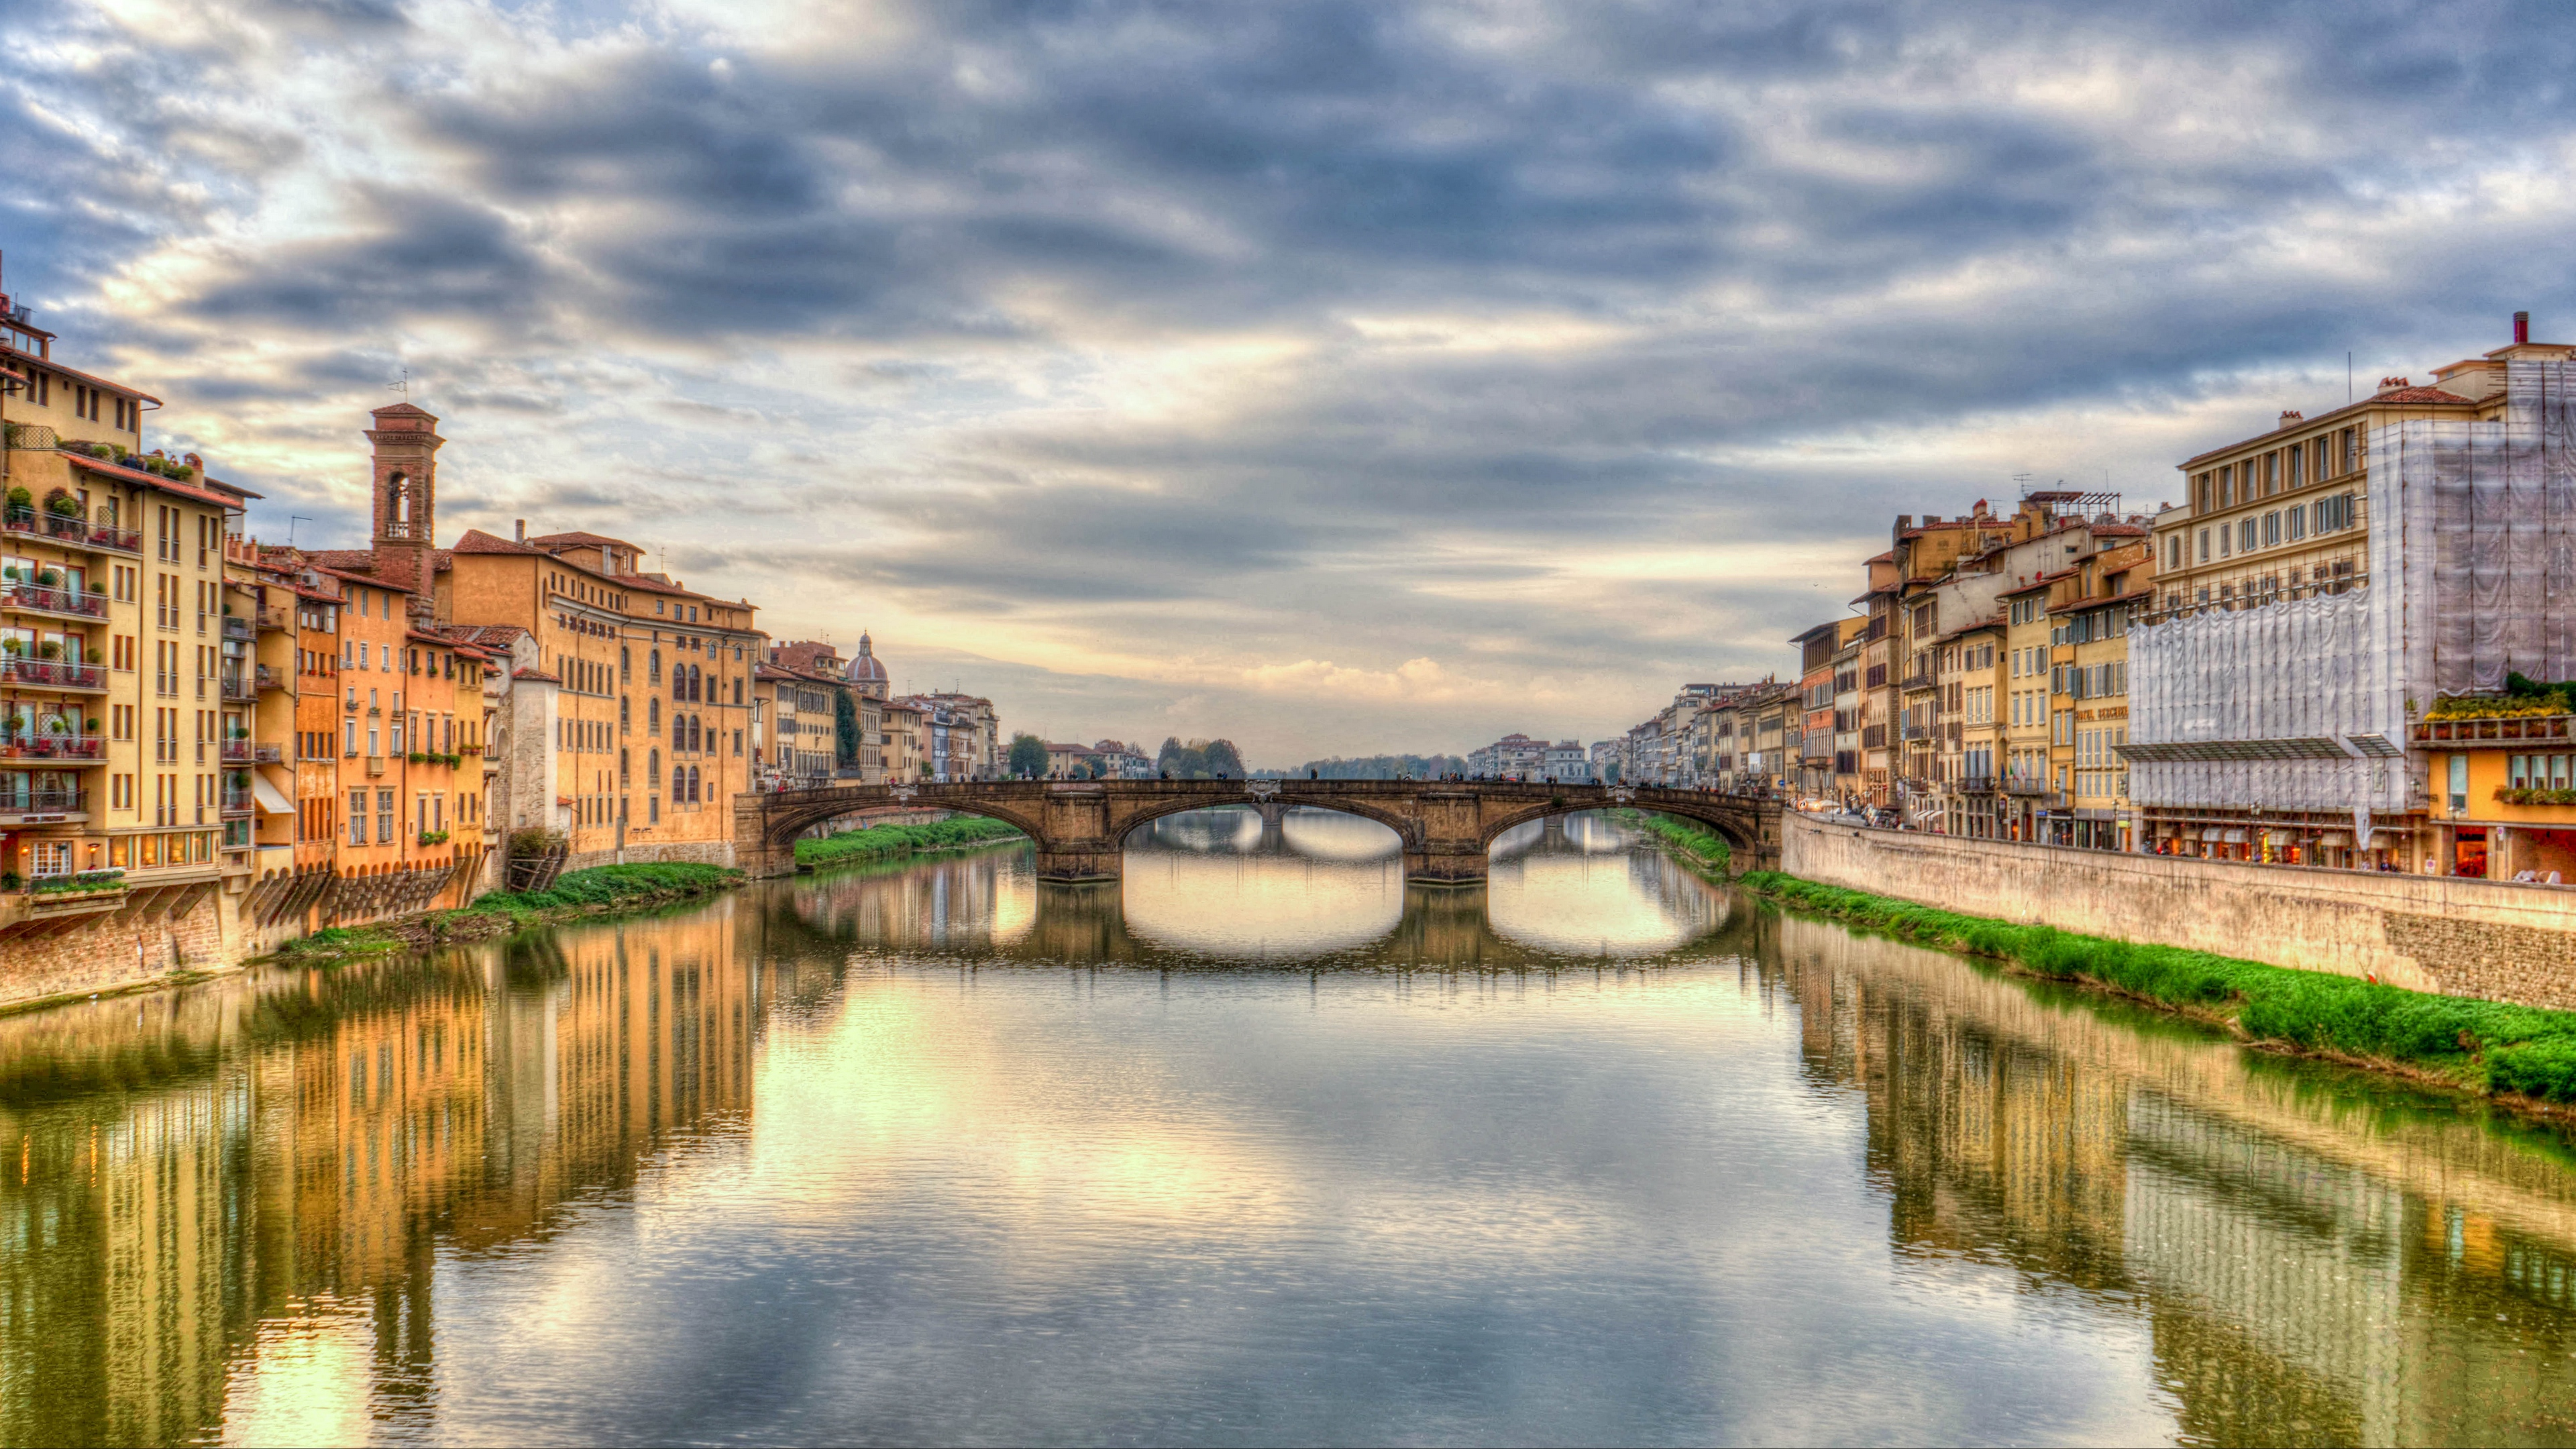 florence italy bridge river hdr 4k 1538066103 - florence, italy, bridge, river, hdr 4k - Italy, florence, bridge